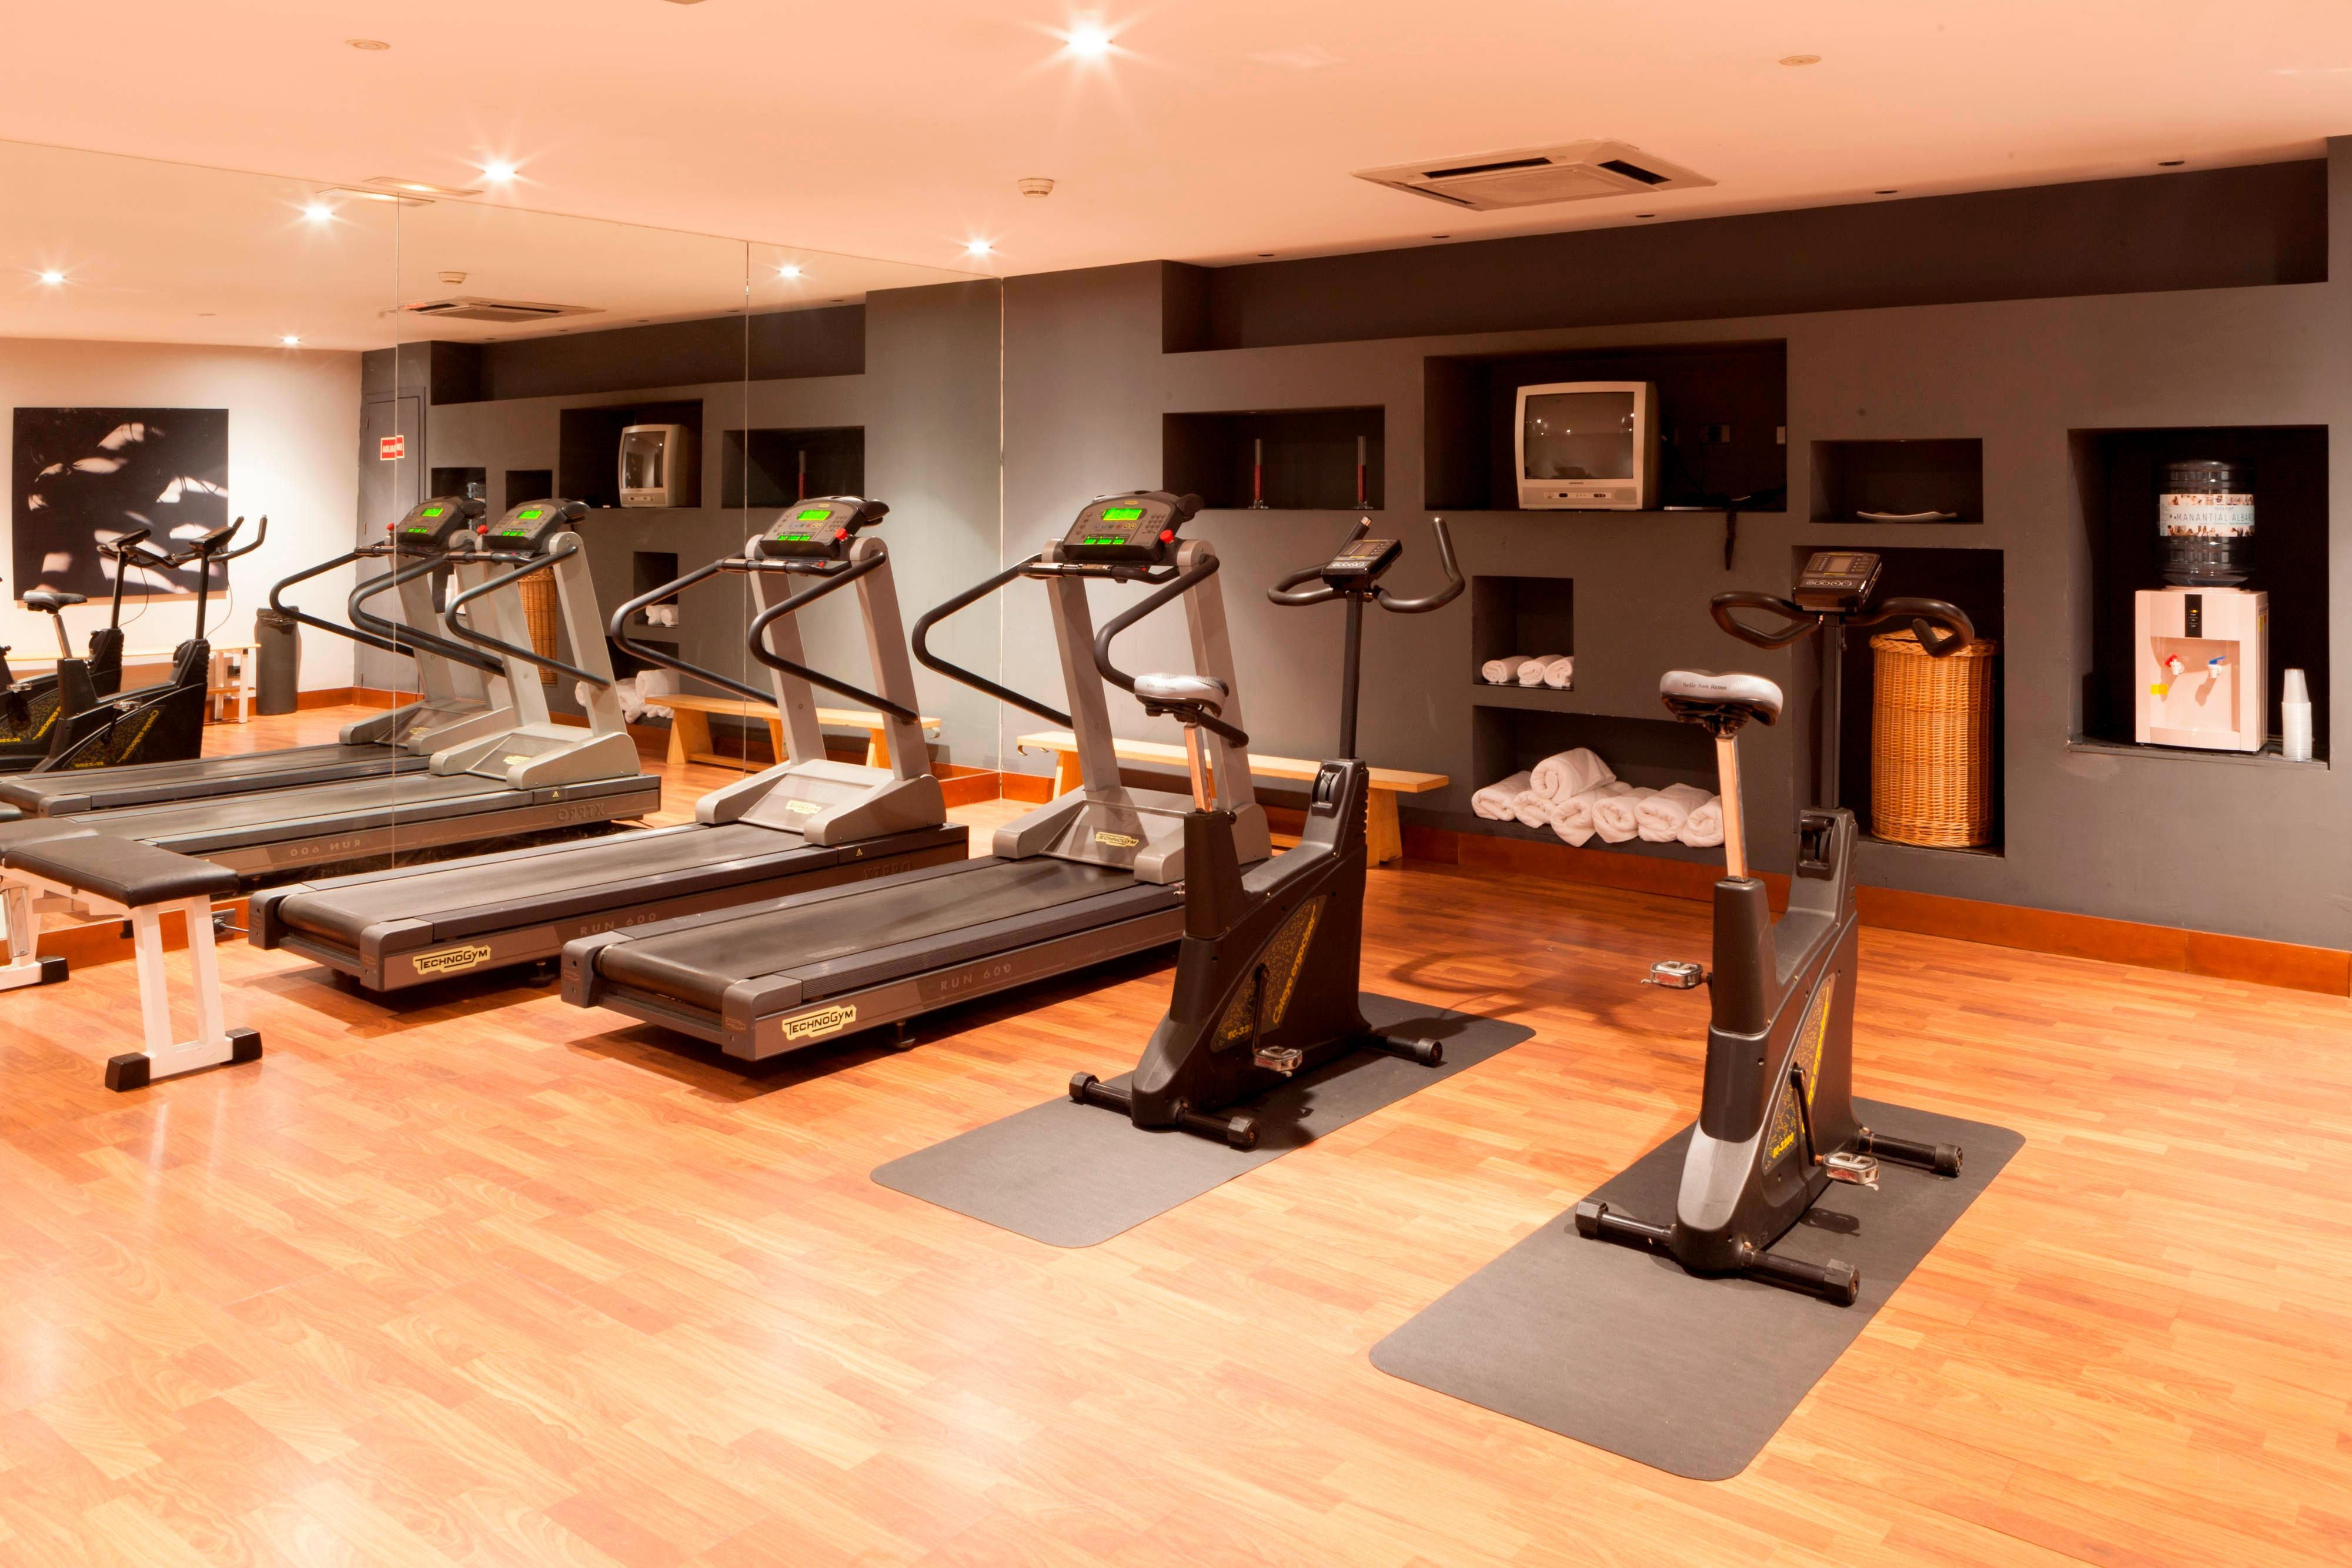 seville hotel with fitness center